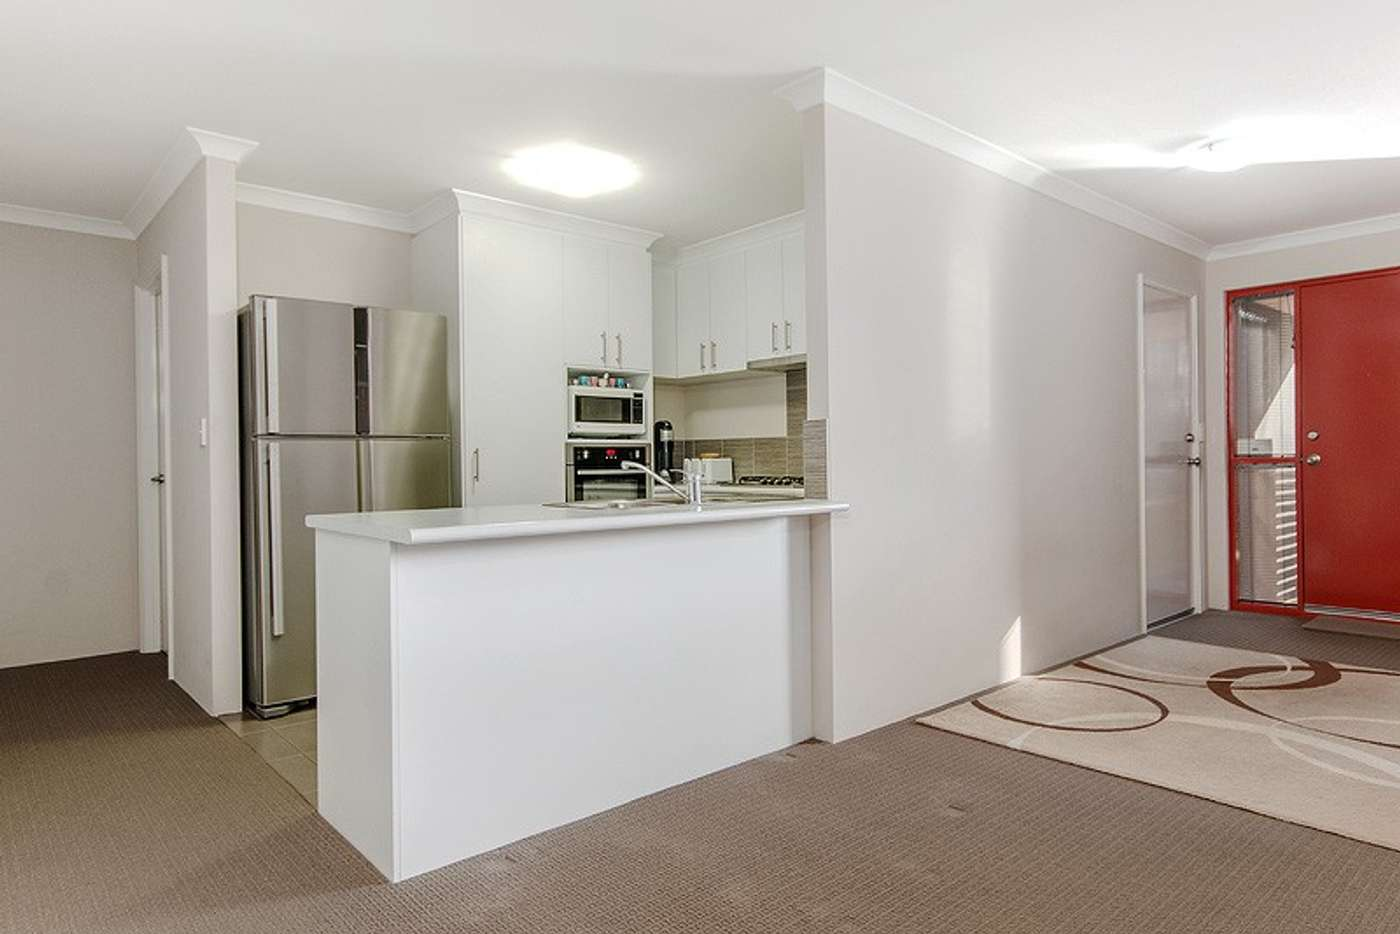 Sixth view of Homely house listing, 3 McDermott Road, Kwinana Town Centre WA 6167